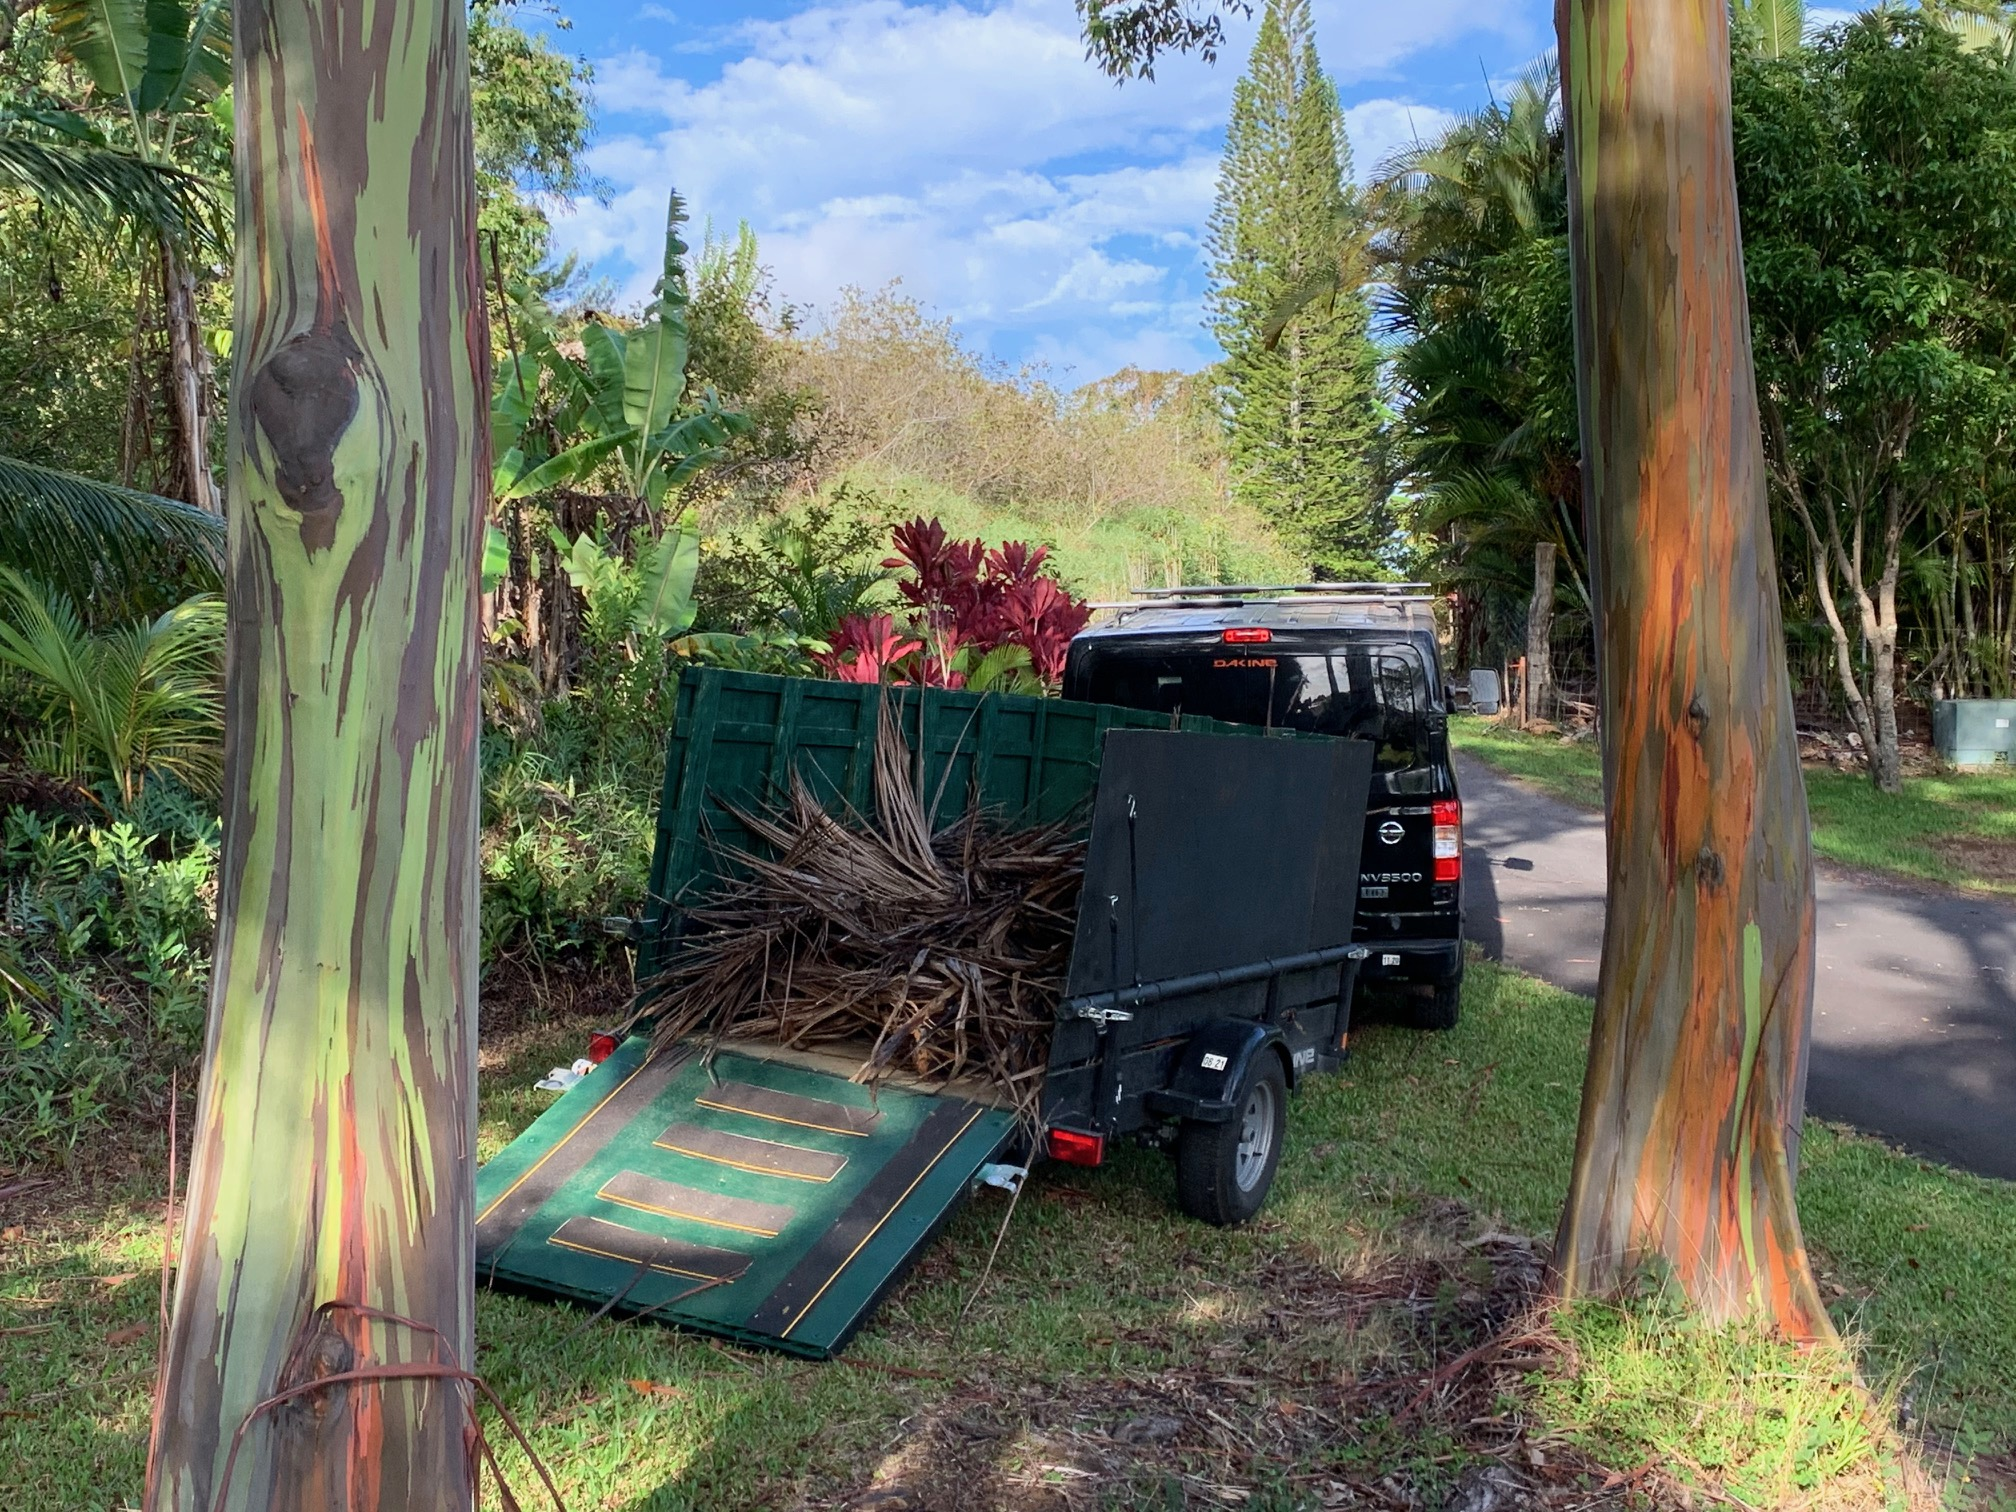 #MAUI GREEN WASTE RECYCLING & COMPOSTING